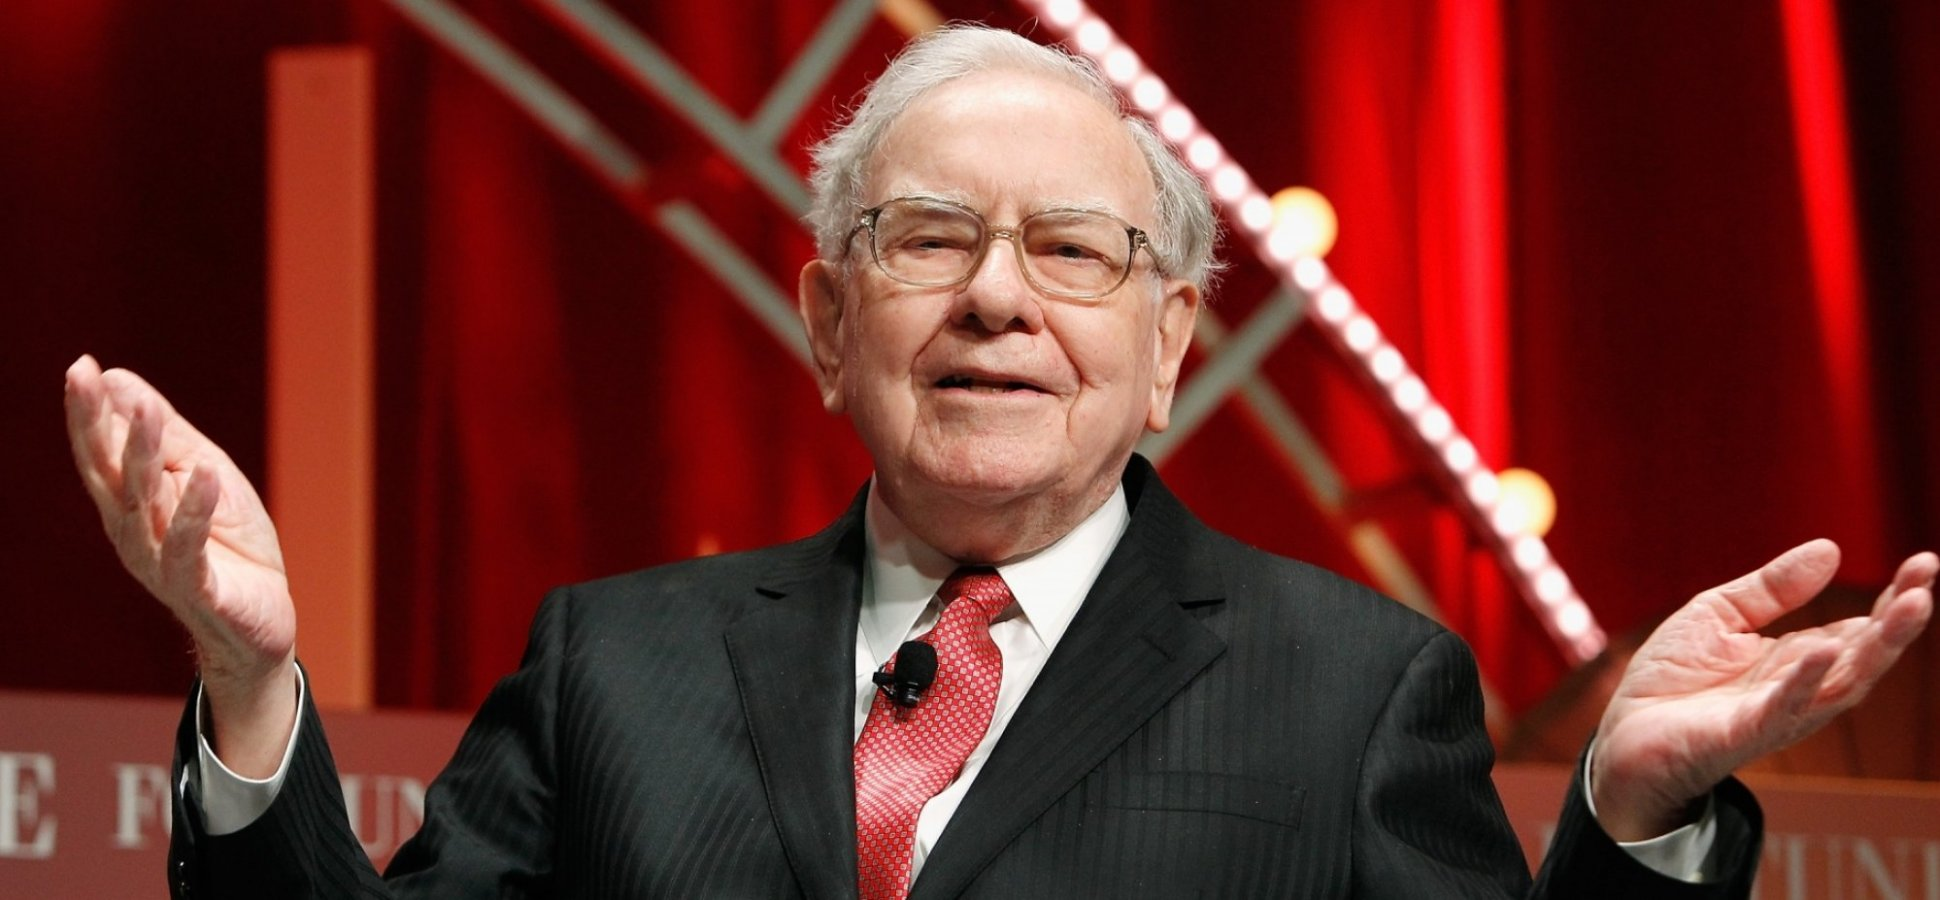 Warren Buffett (Finally) Shares Some Details on Health Care Venture With Amazon and J.P. Morgan